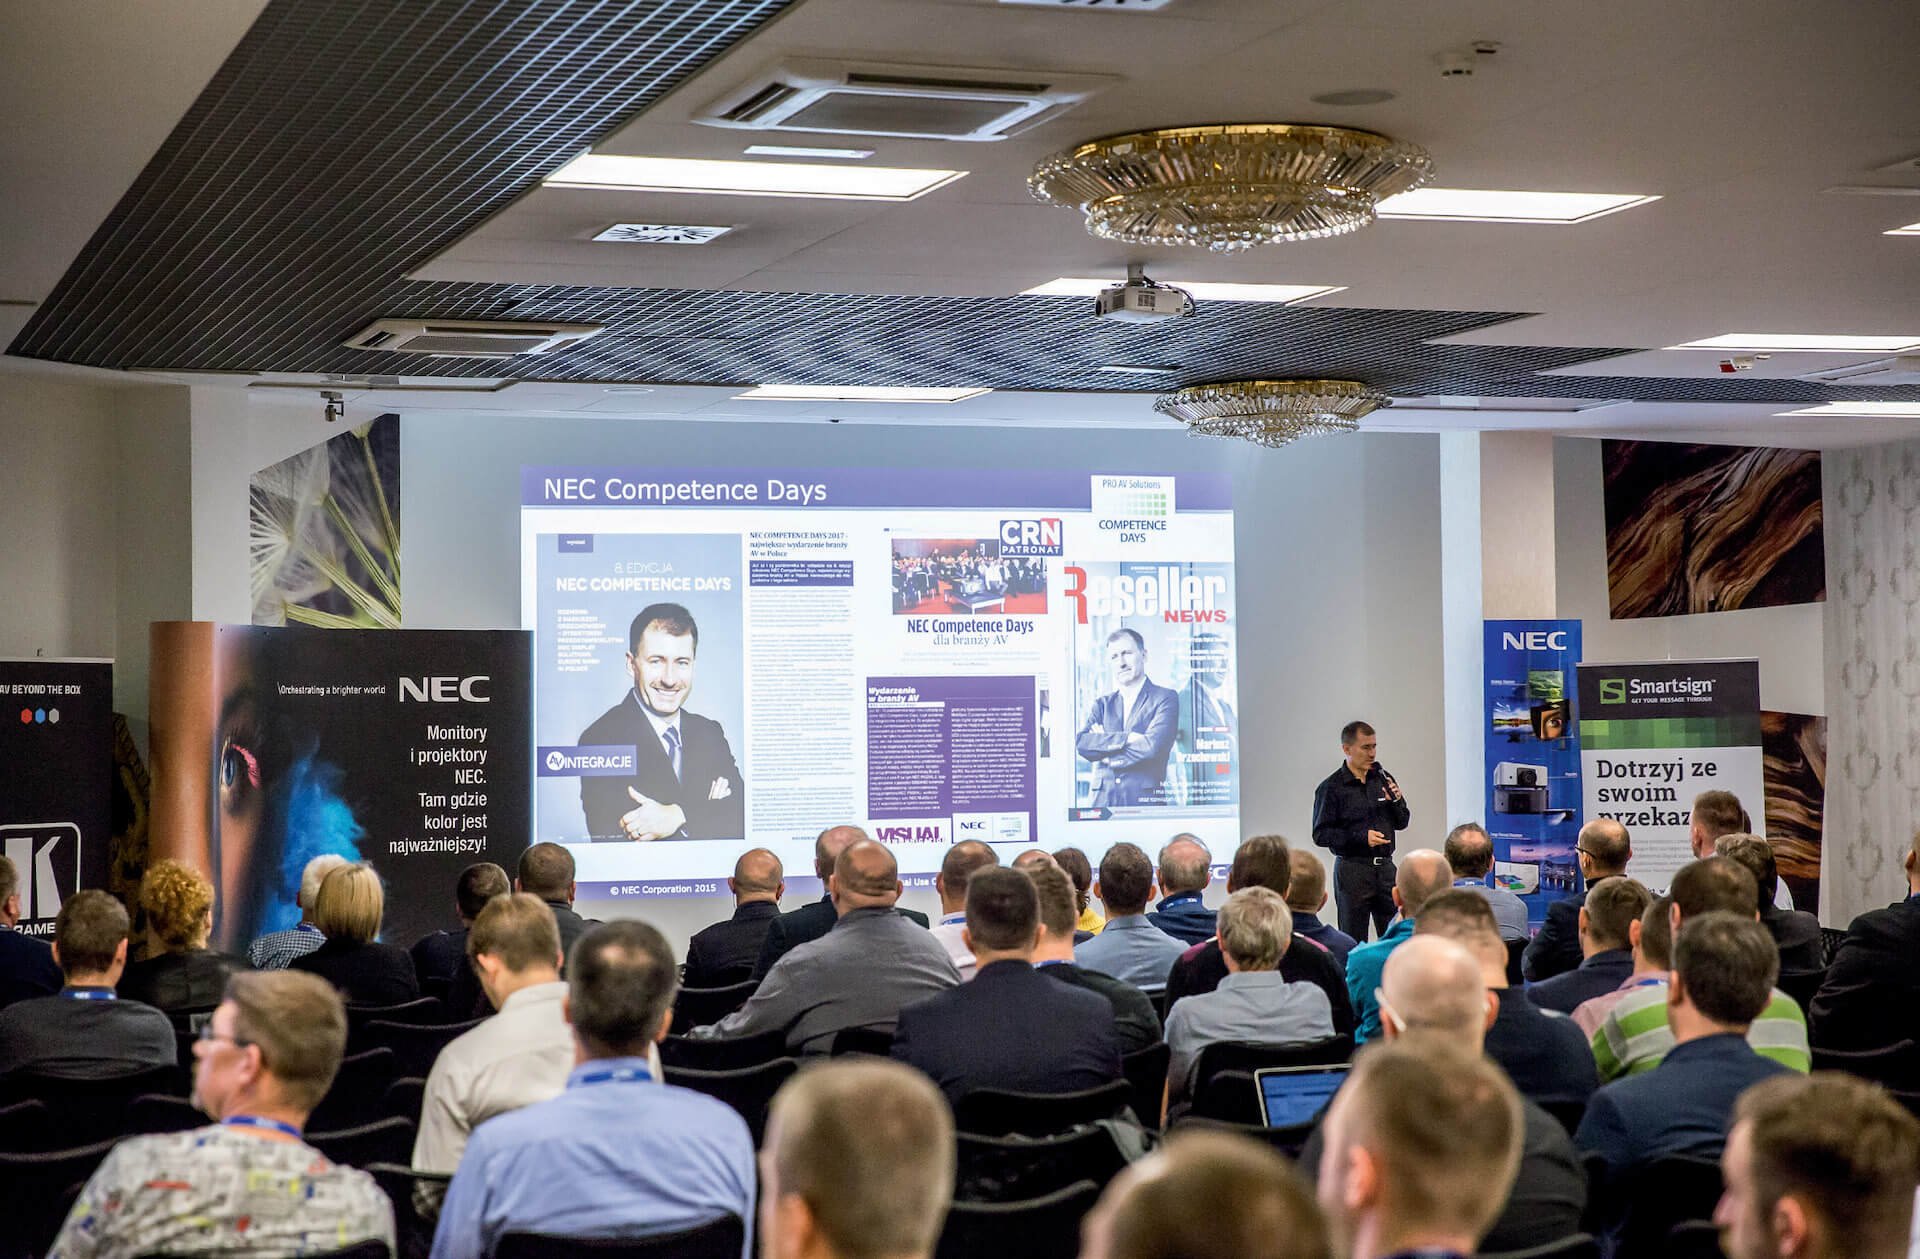 NEC Competence Days 2017